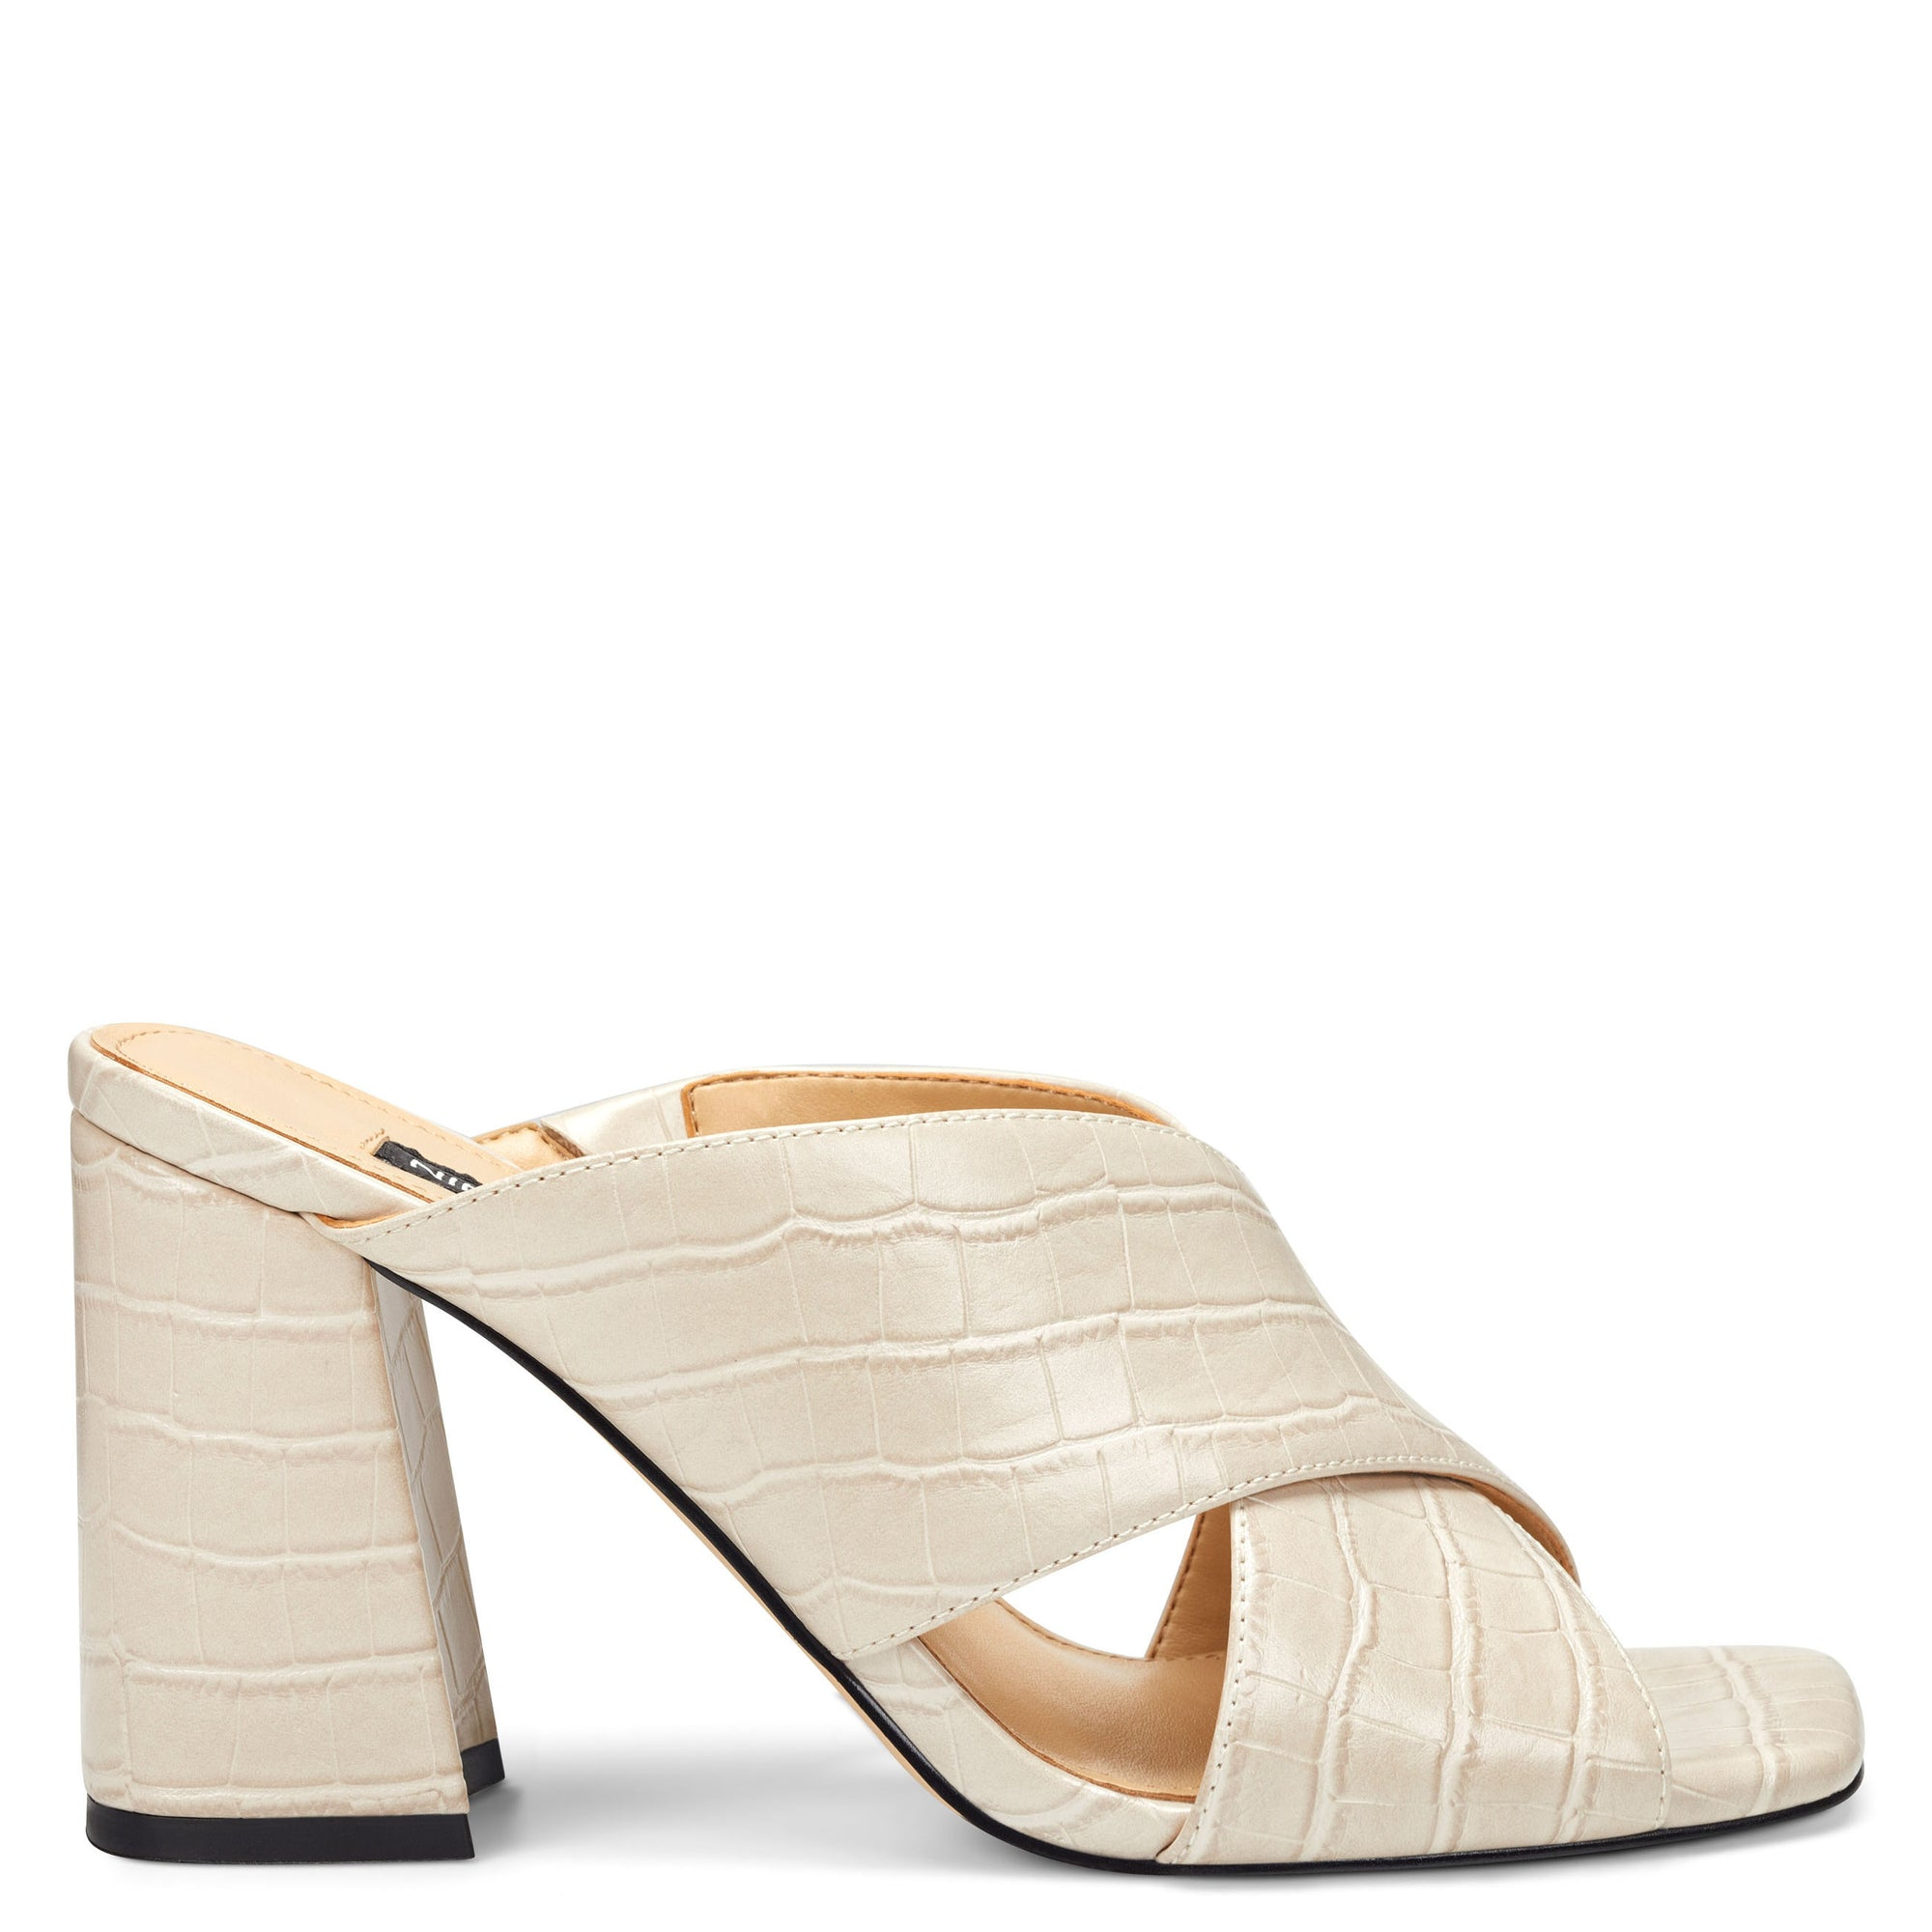 gigi-block-heel-slide-sandals-in-light-natural-embossed-croco